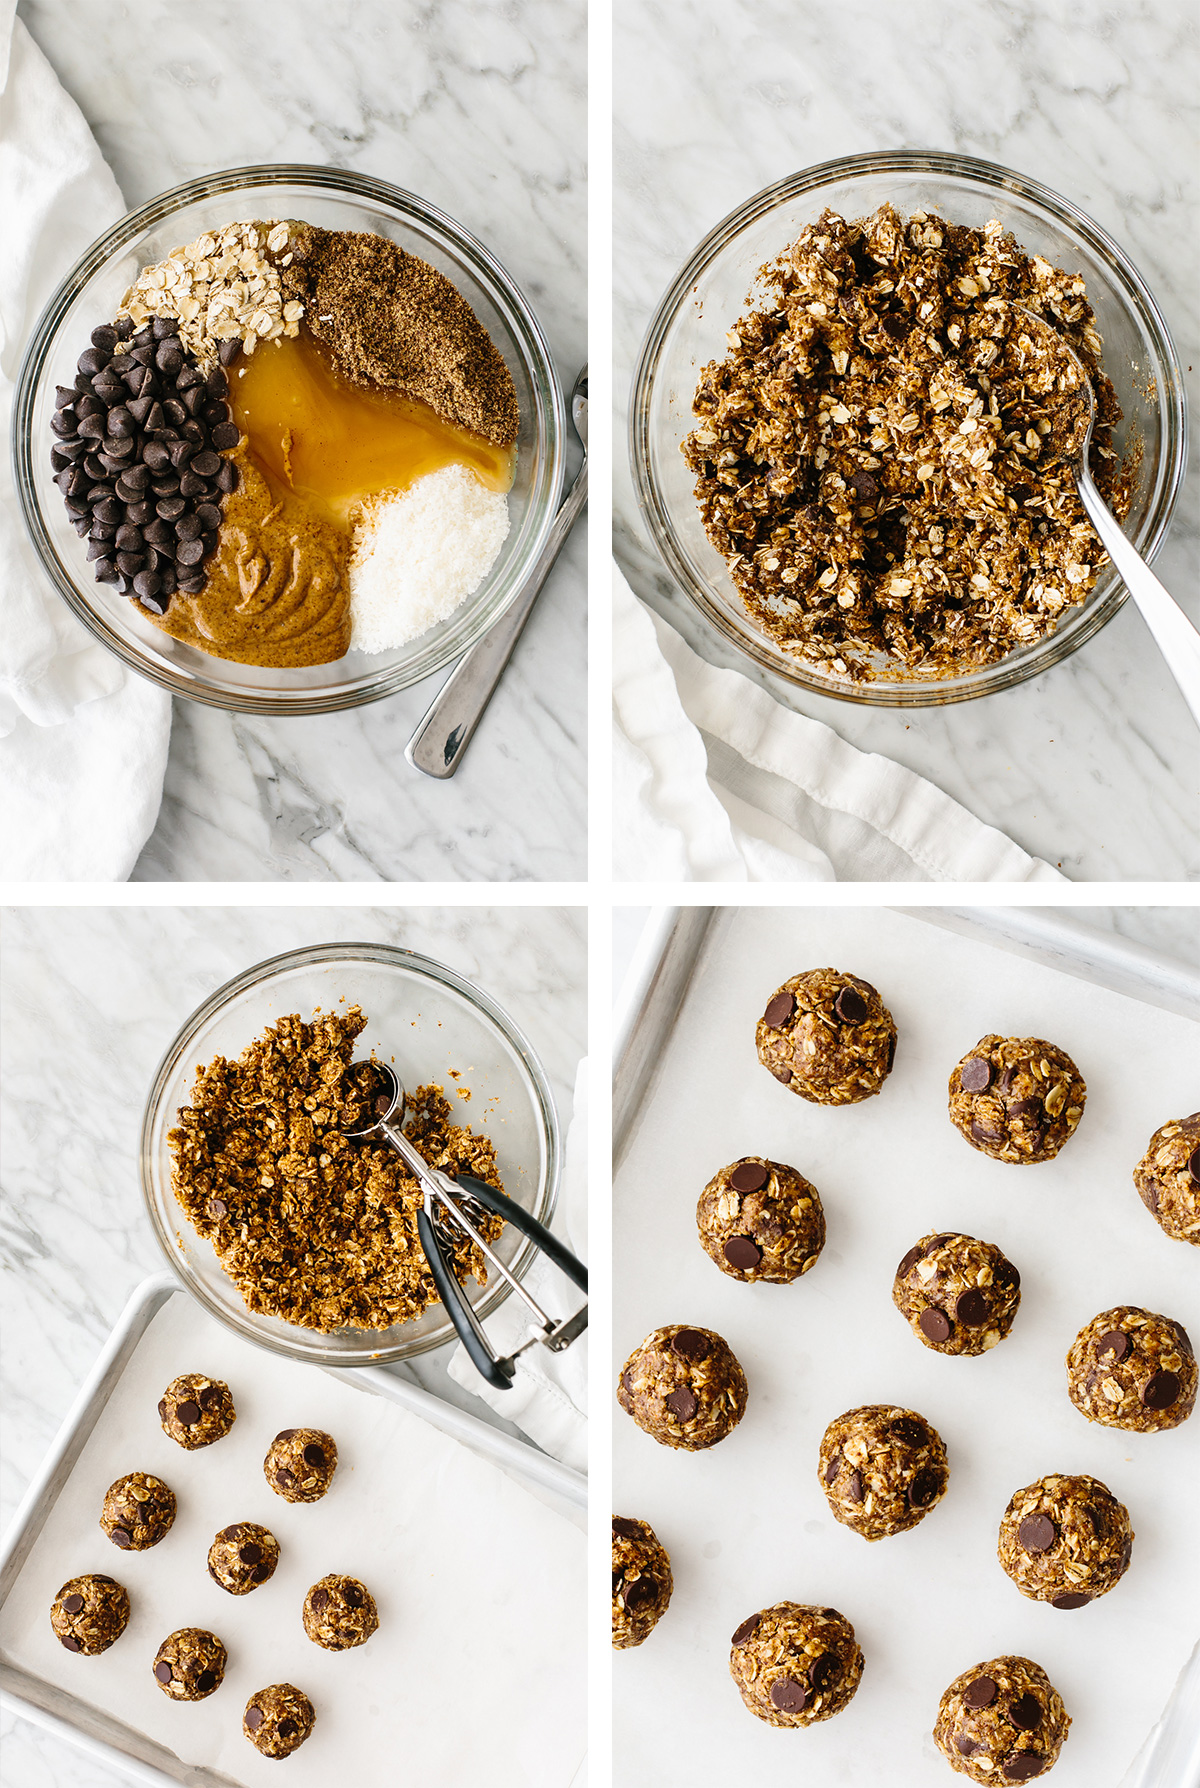 Mixing ingredients and making no bake chocolate chip energy balls.